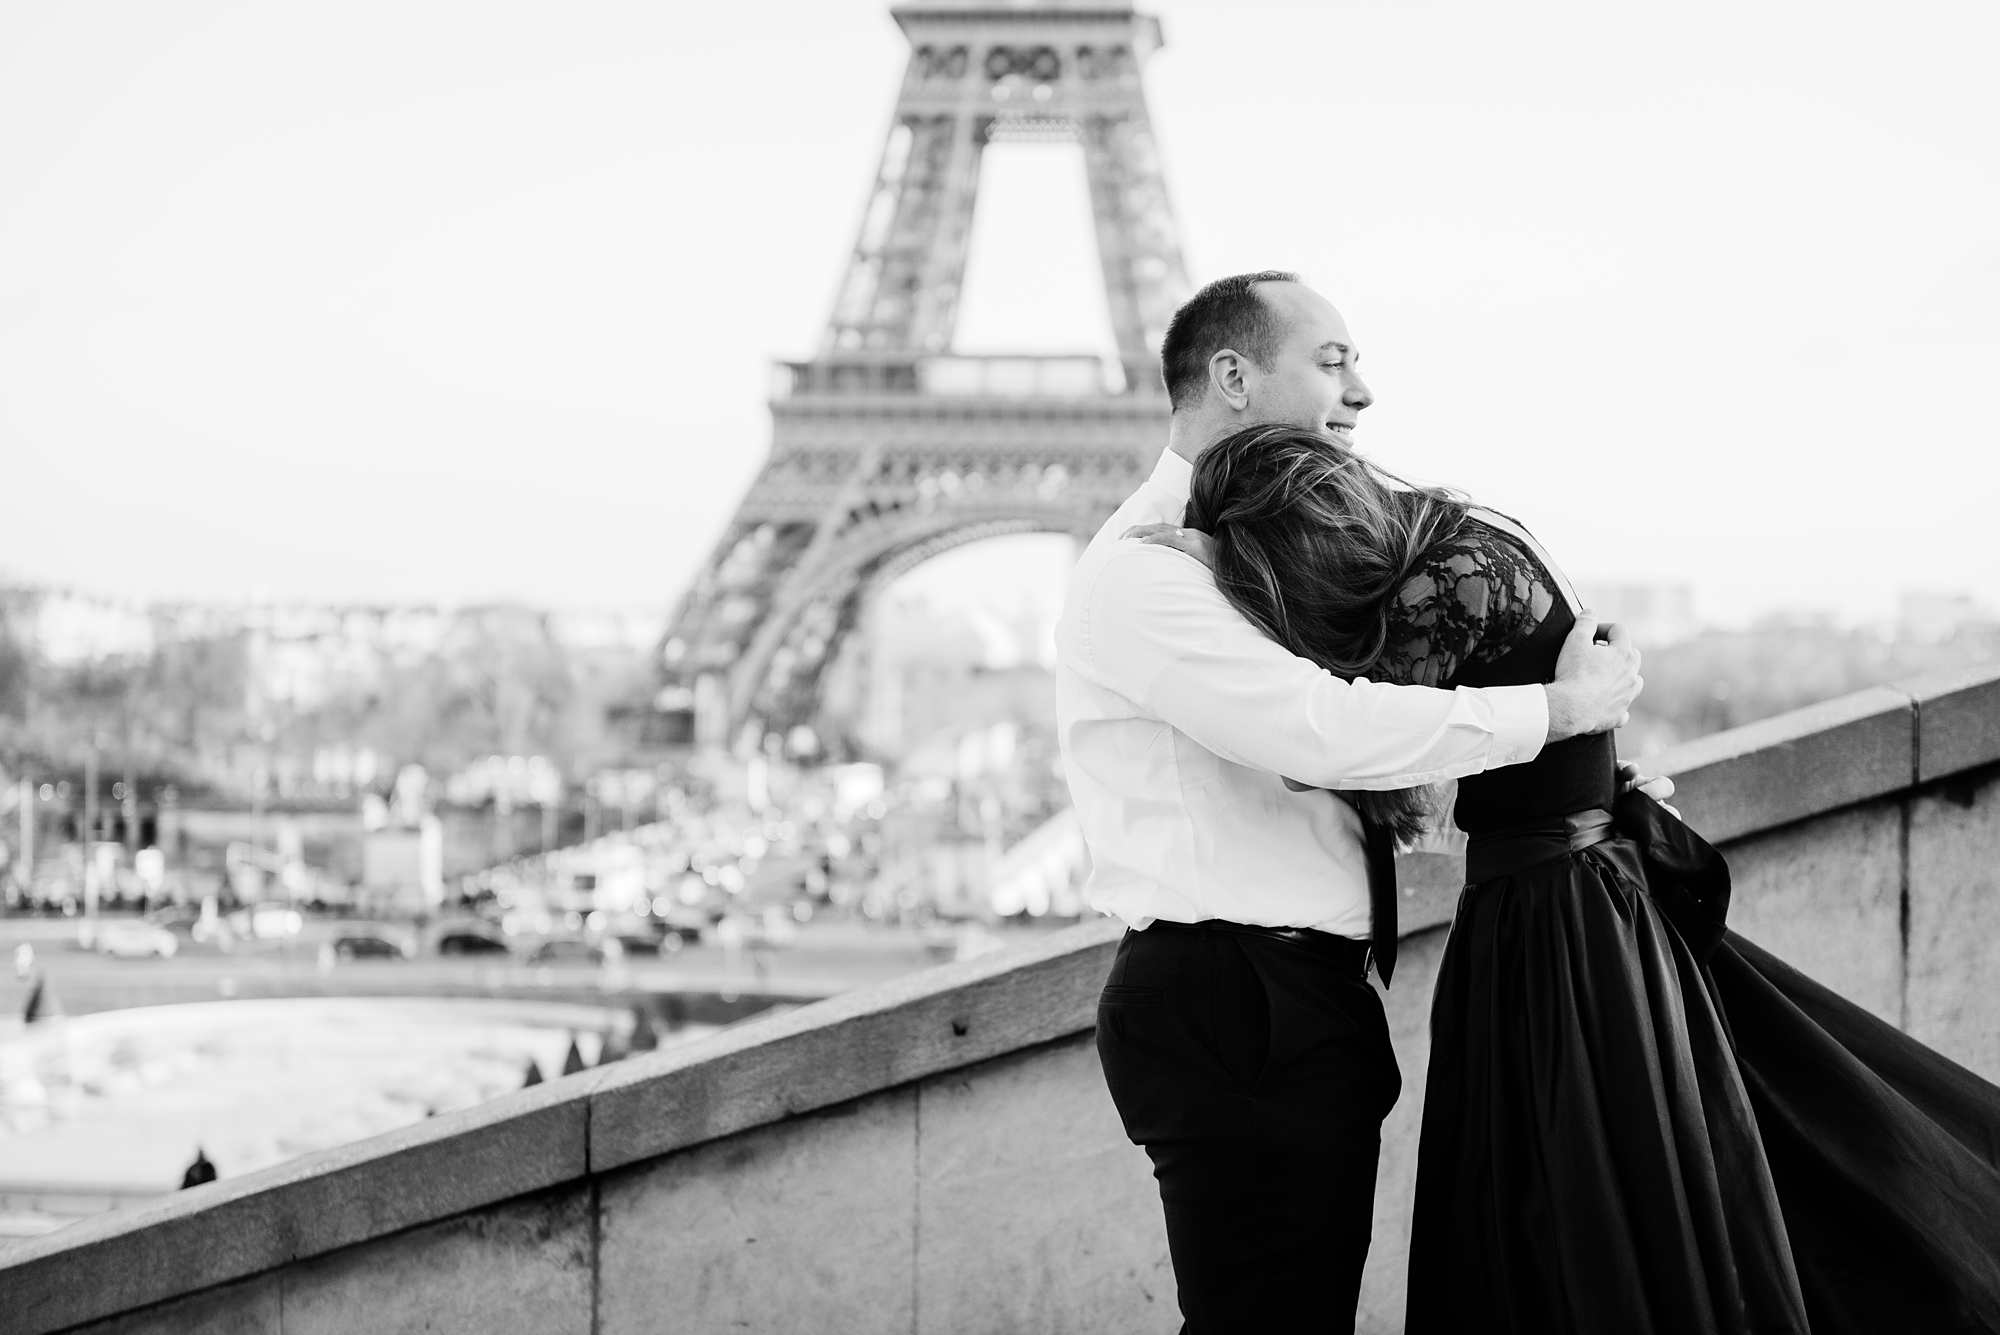 Jennifer and Yannick's Surprise Paris Proposal Photo Shoot at the Eiffel Tower - the hug when she says yes